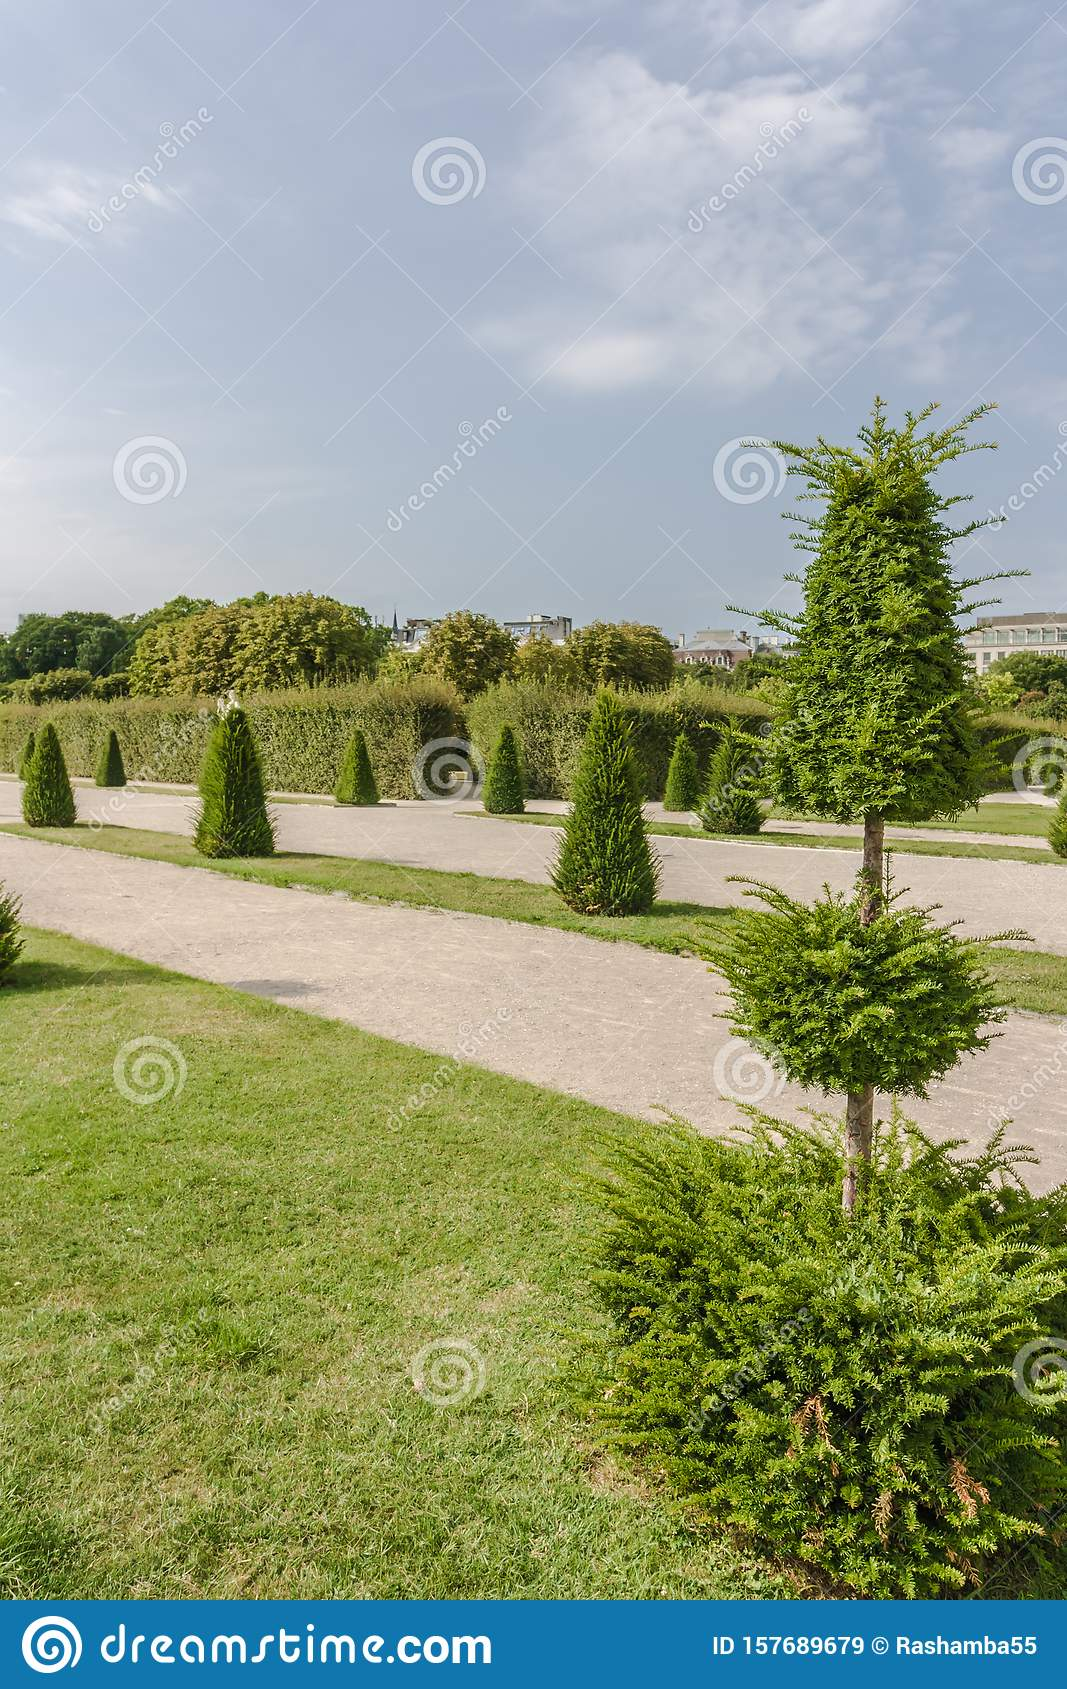 Green Trimmed Trees In The Form Of Geometric Figures Topiary Tree Formal Garden Figure Evergreen Bush Stock Image Image Of Garden Design 157689679